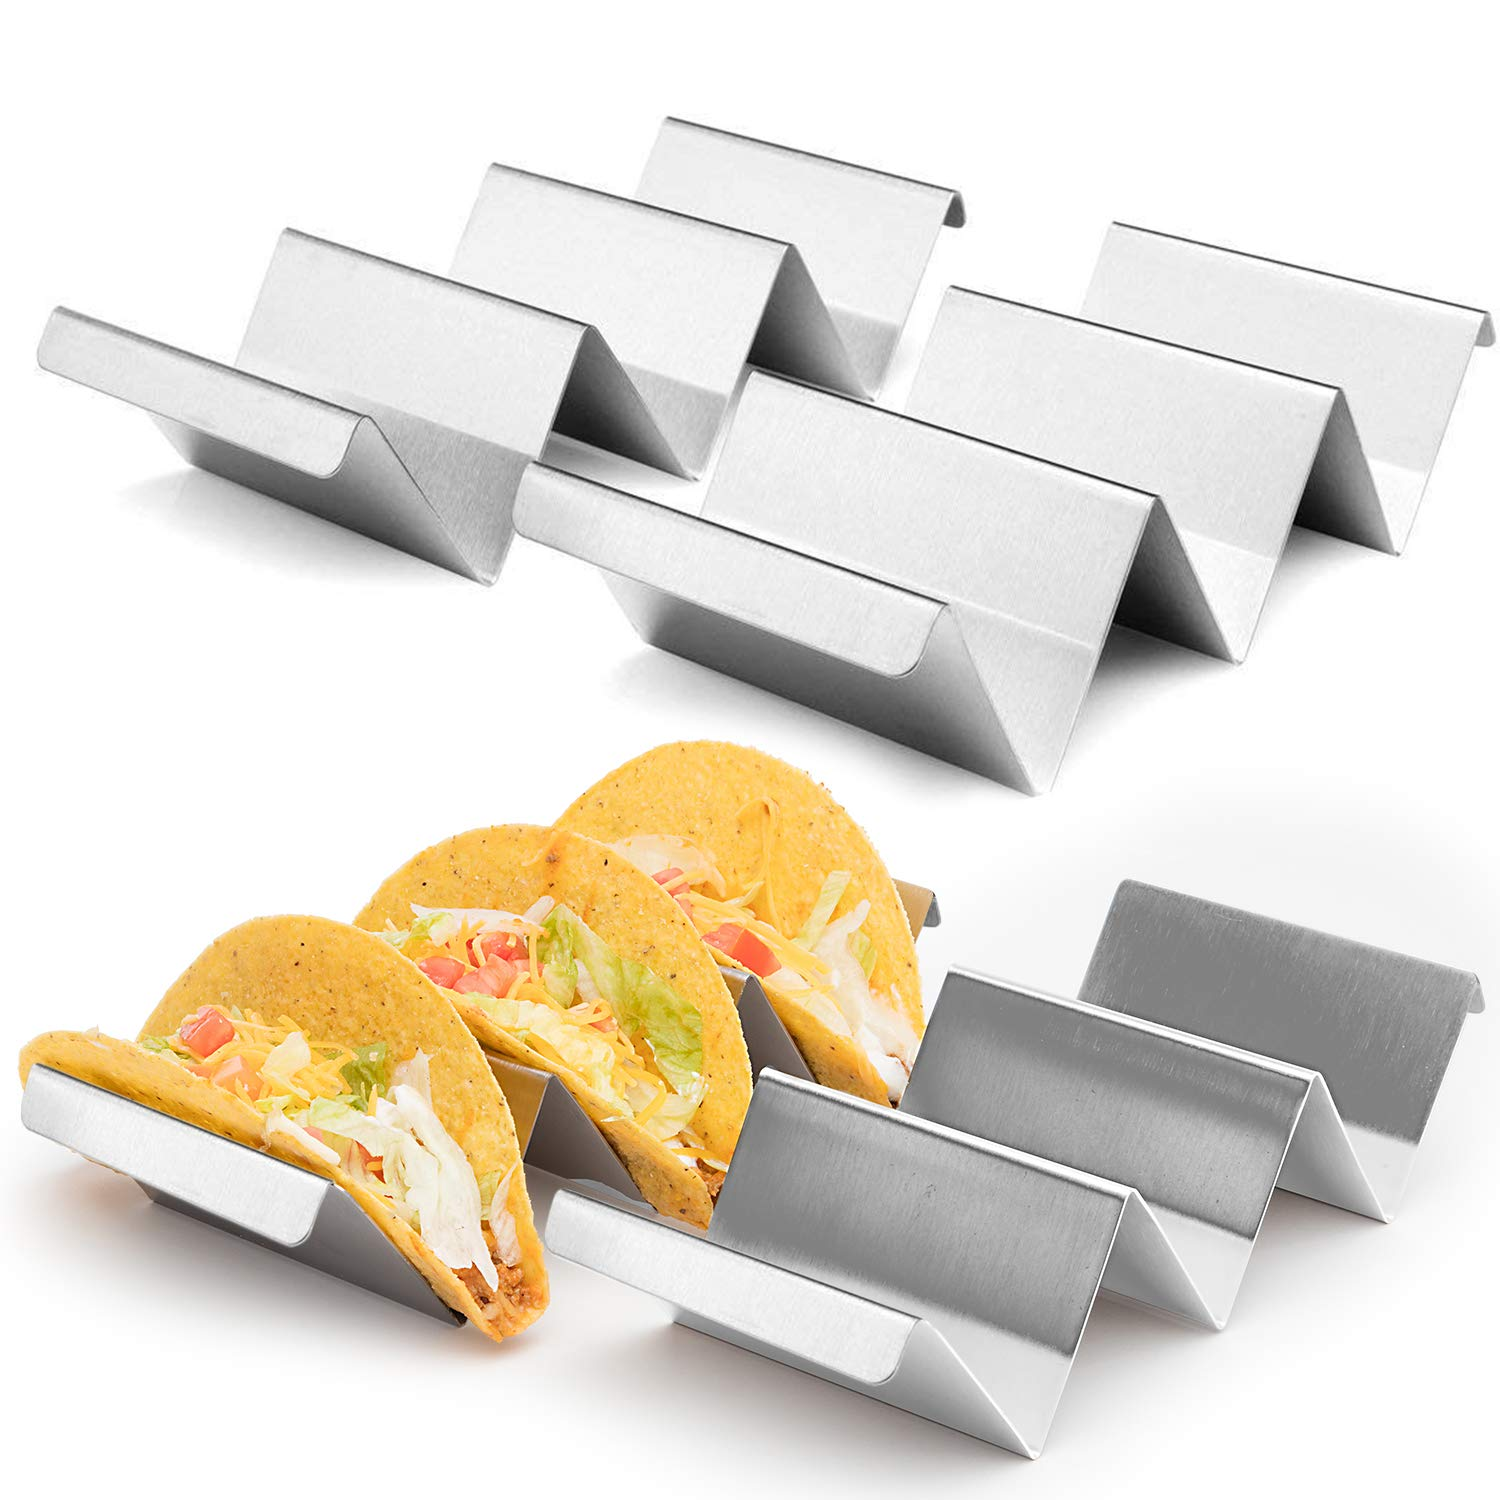 4-Pack Stainless Steel Taco Holder Set, 8'' x 4'' x 2'' Metal Taco Holders with Handles. Convenient Taco Serving Rack for Parties, Picnics, Taco Tuesdays, and Family Meals. Hard & Soft Shell Taco Holders